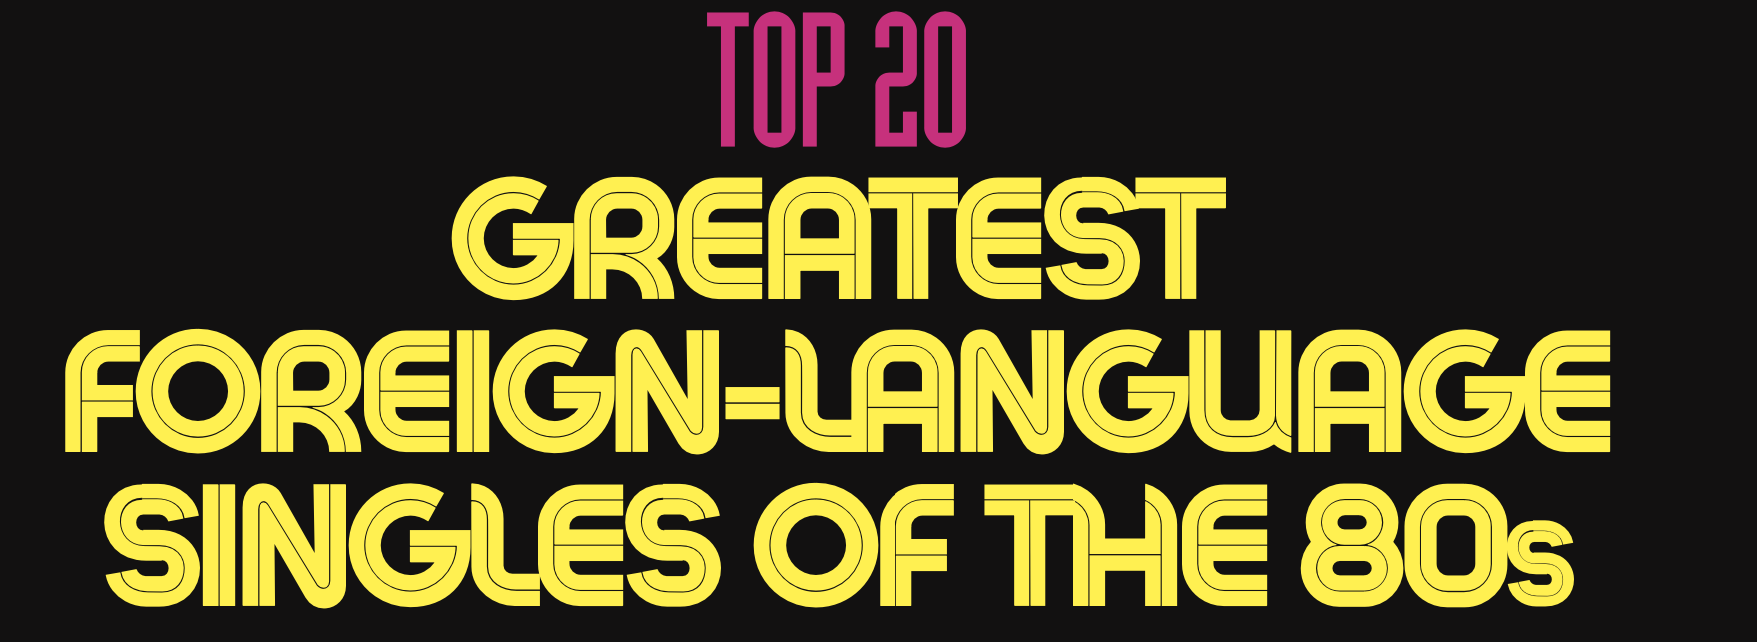 Top 20 greatest foreign-language singles